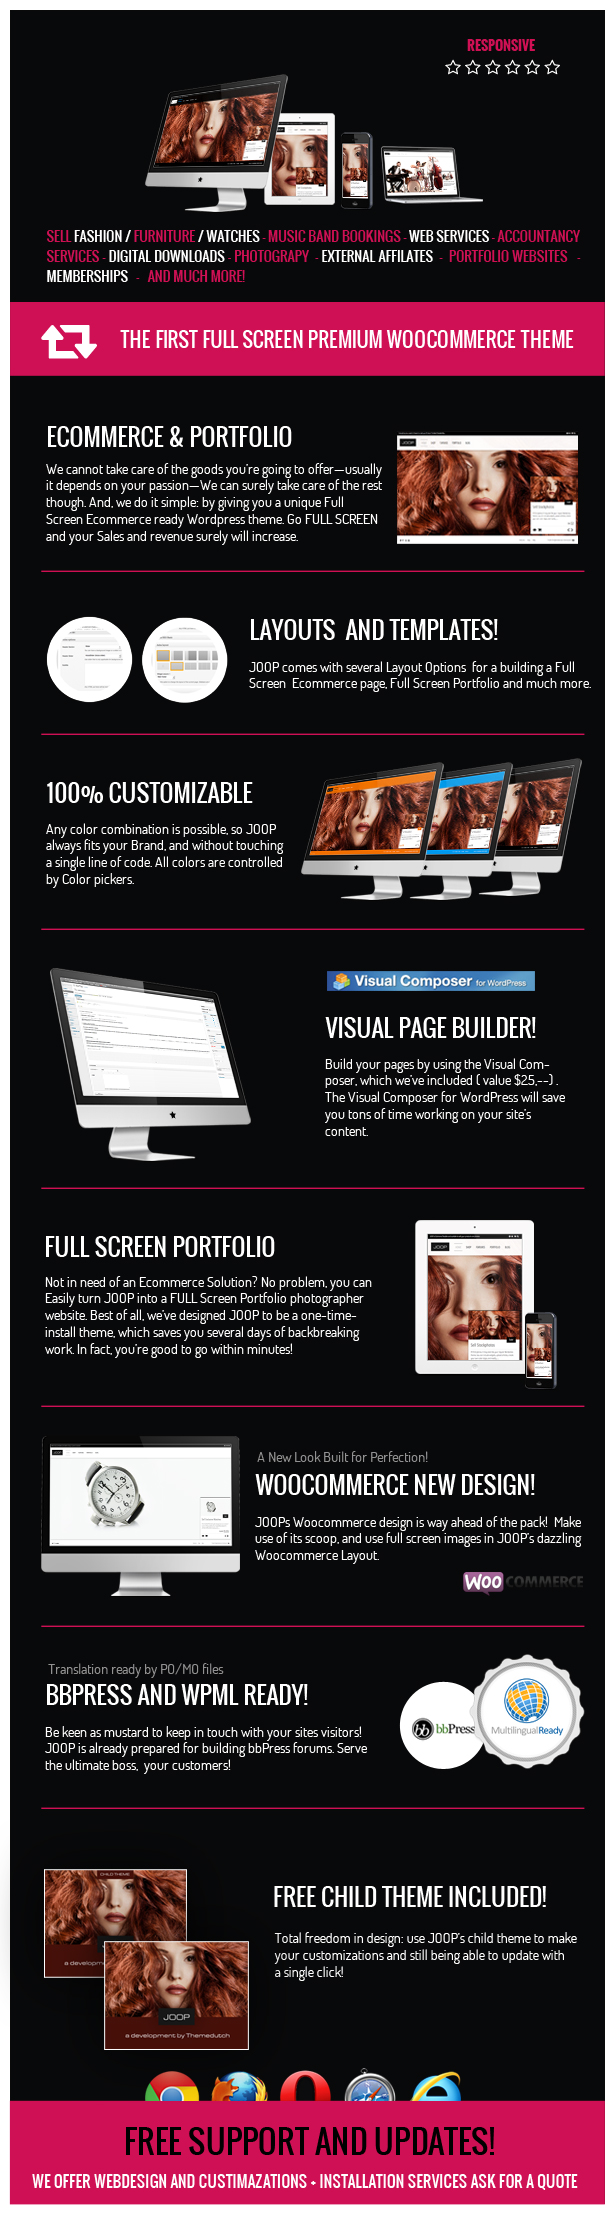 JOOP - Full Screen Woocommerce / Portfolio Theme